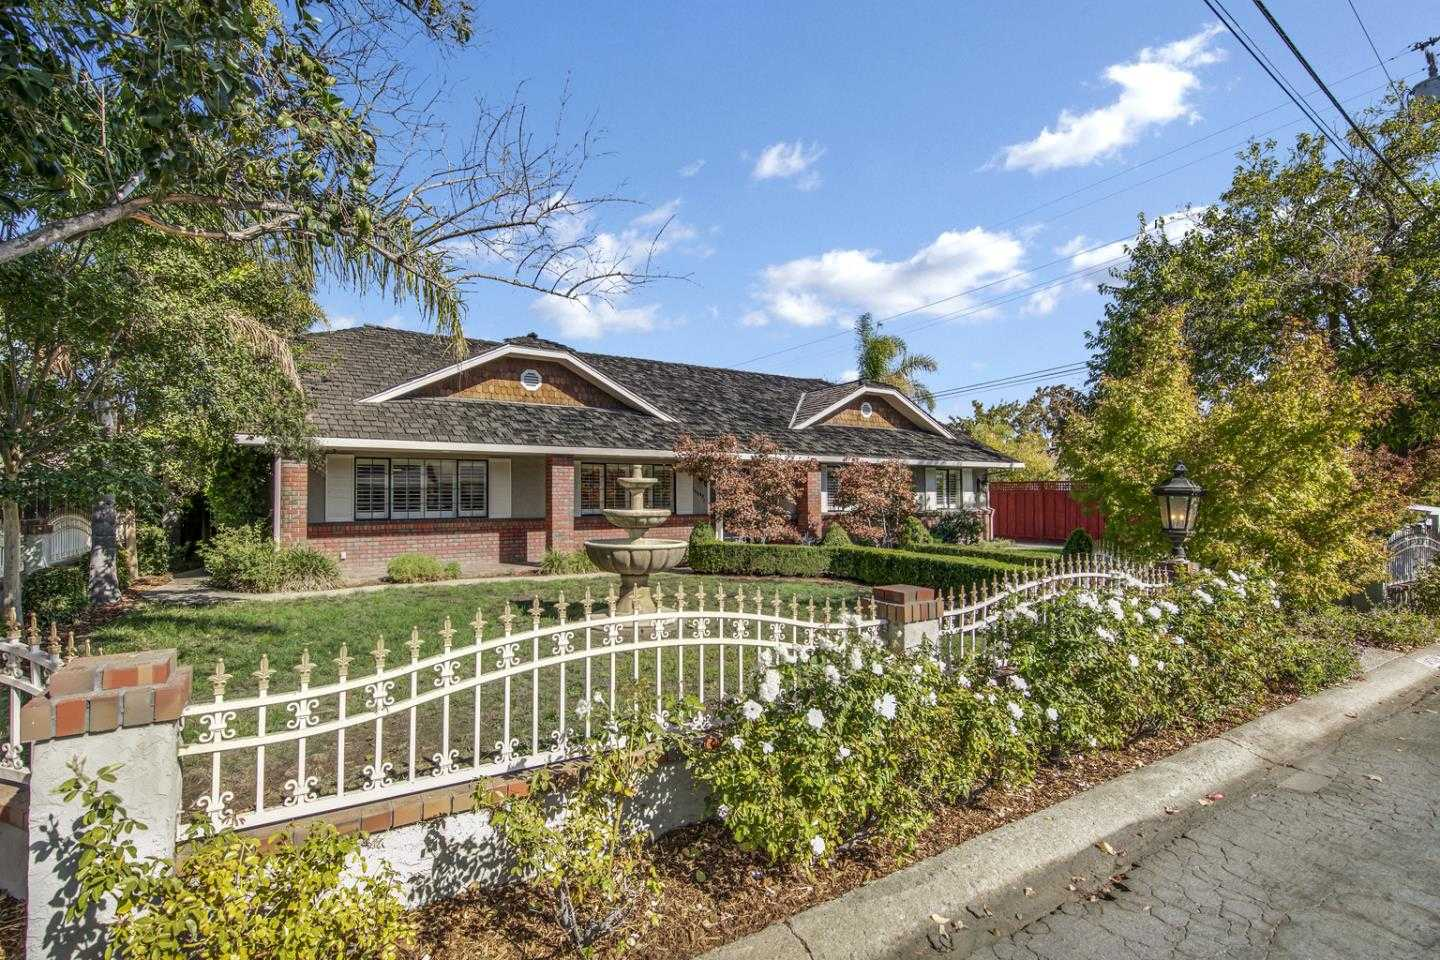 $1,999,888 - 5Br/4Ba -  for Sale in San Jose